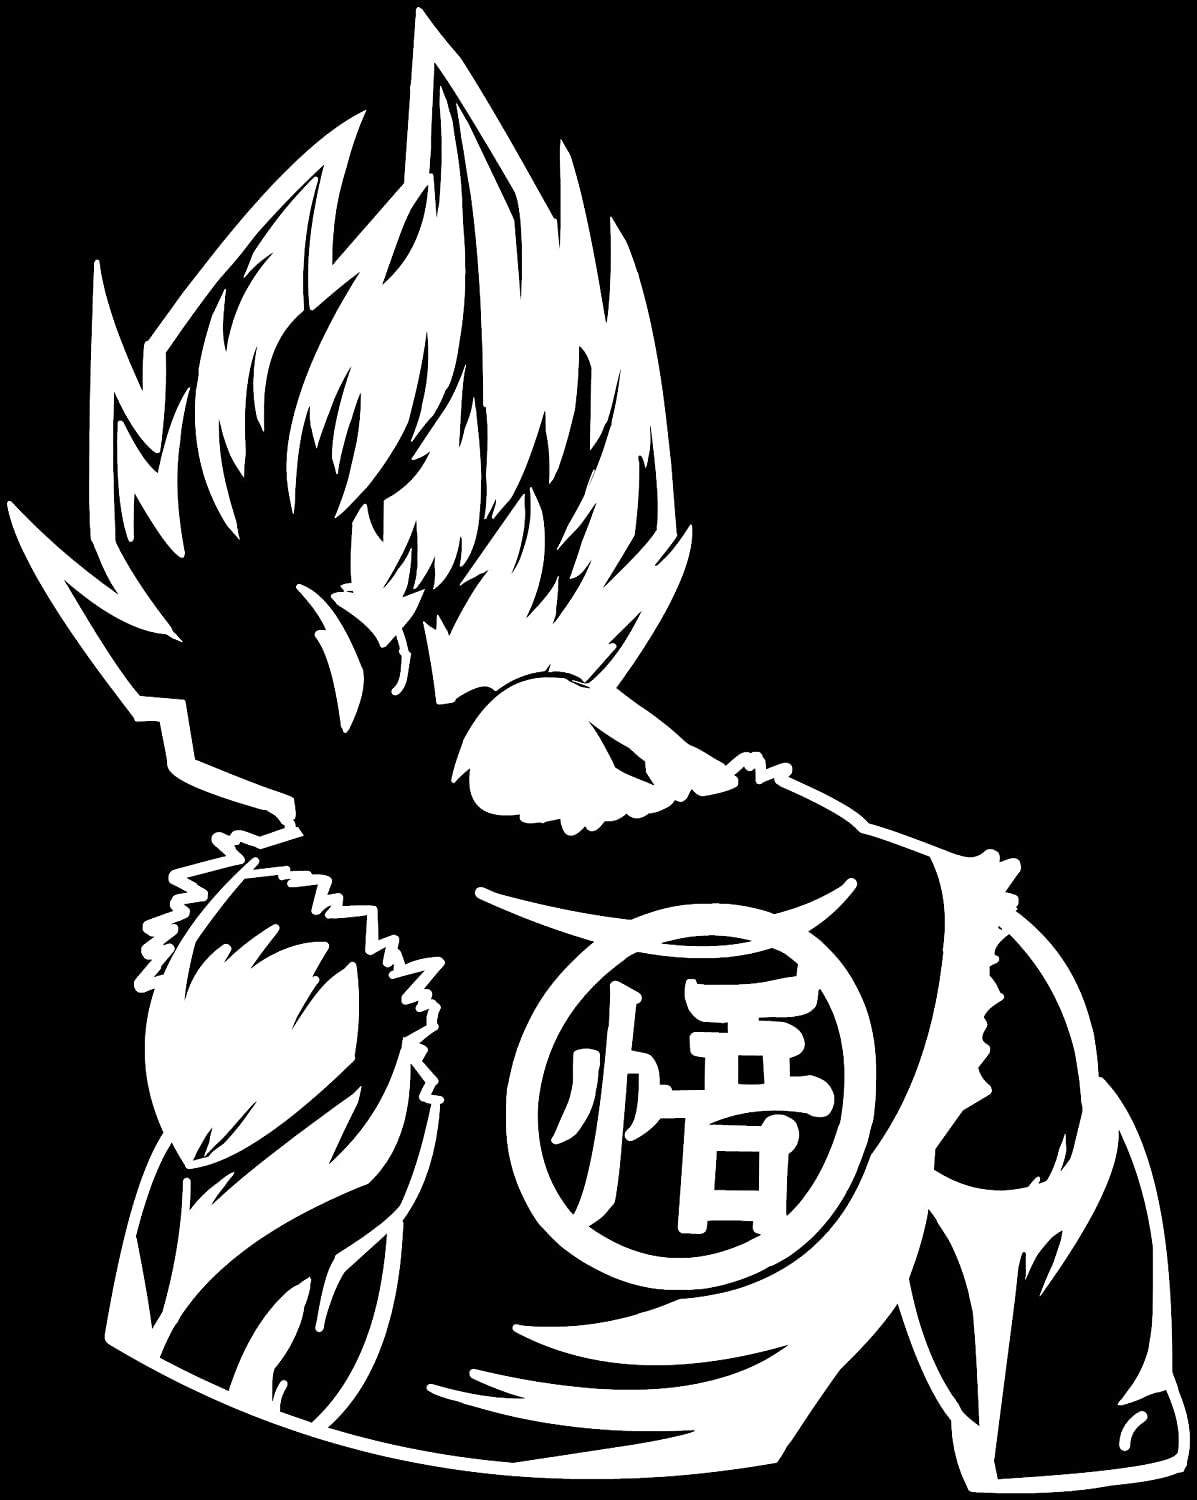 Amazon com kyokovinyl dragon ball z dbz goku super saiyan anime decal sticker for car truck laptop 6 2 x 5 0 white automotive